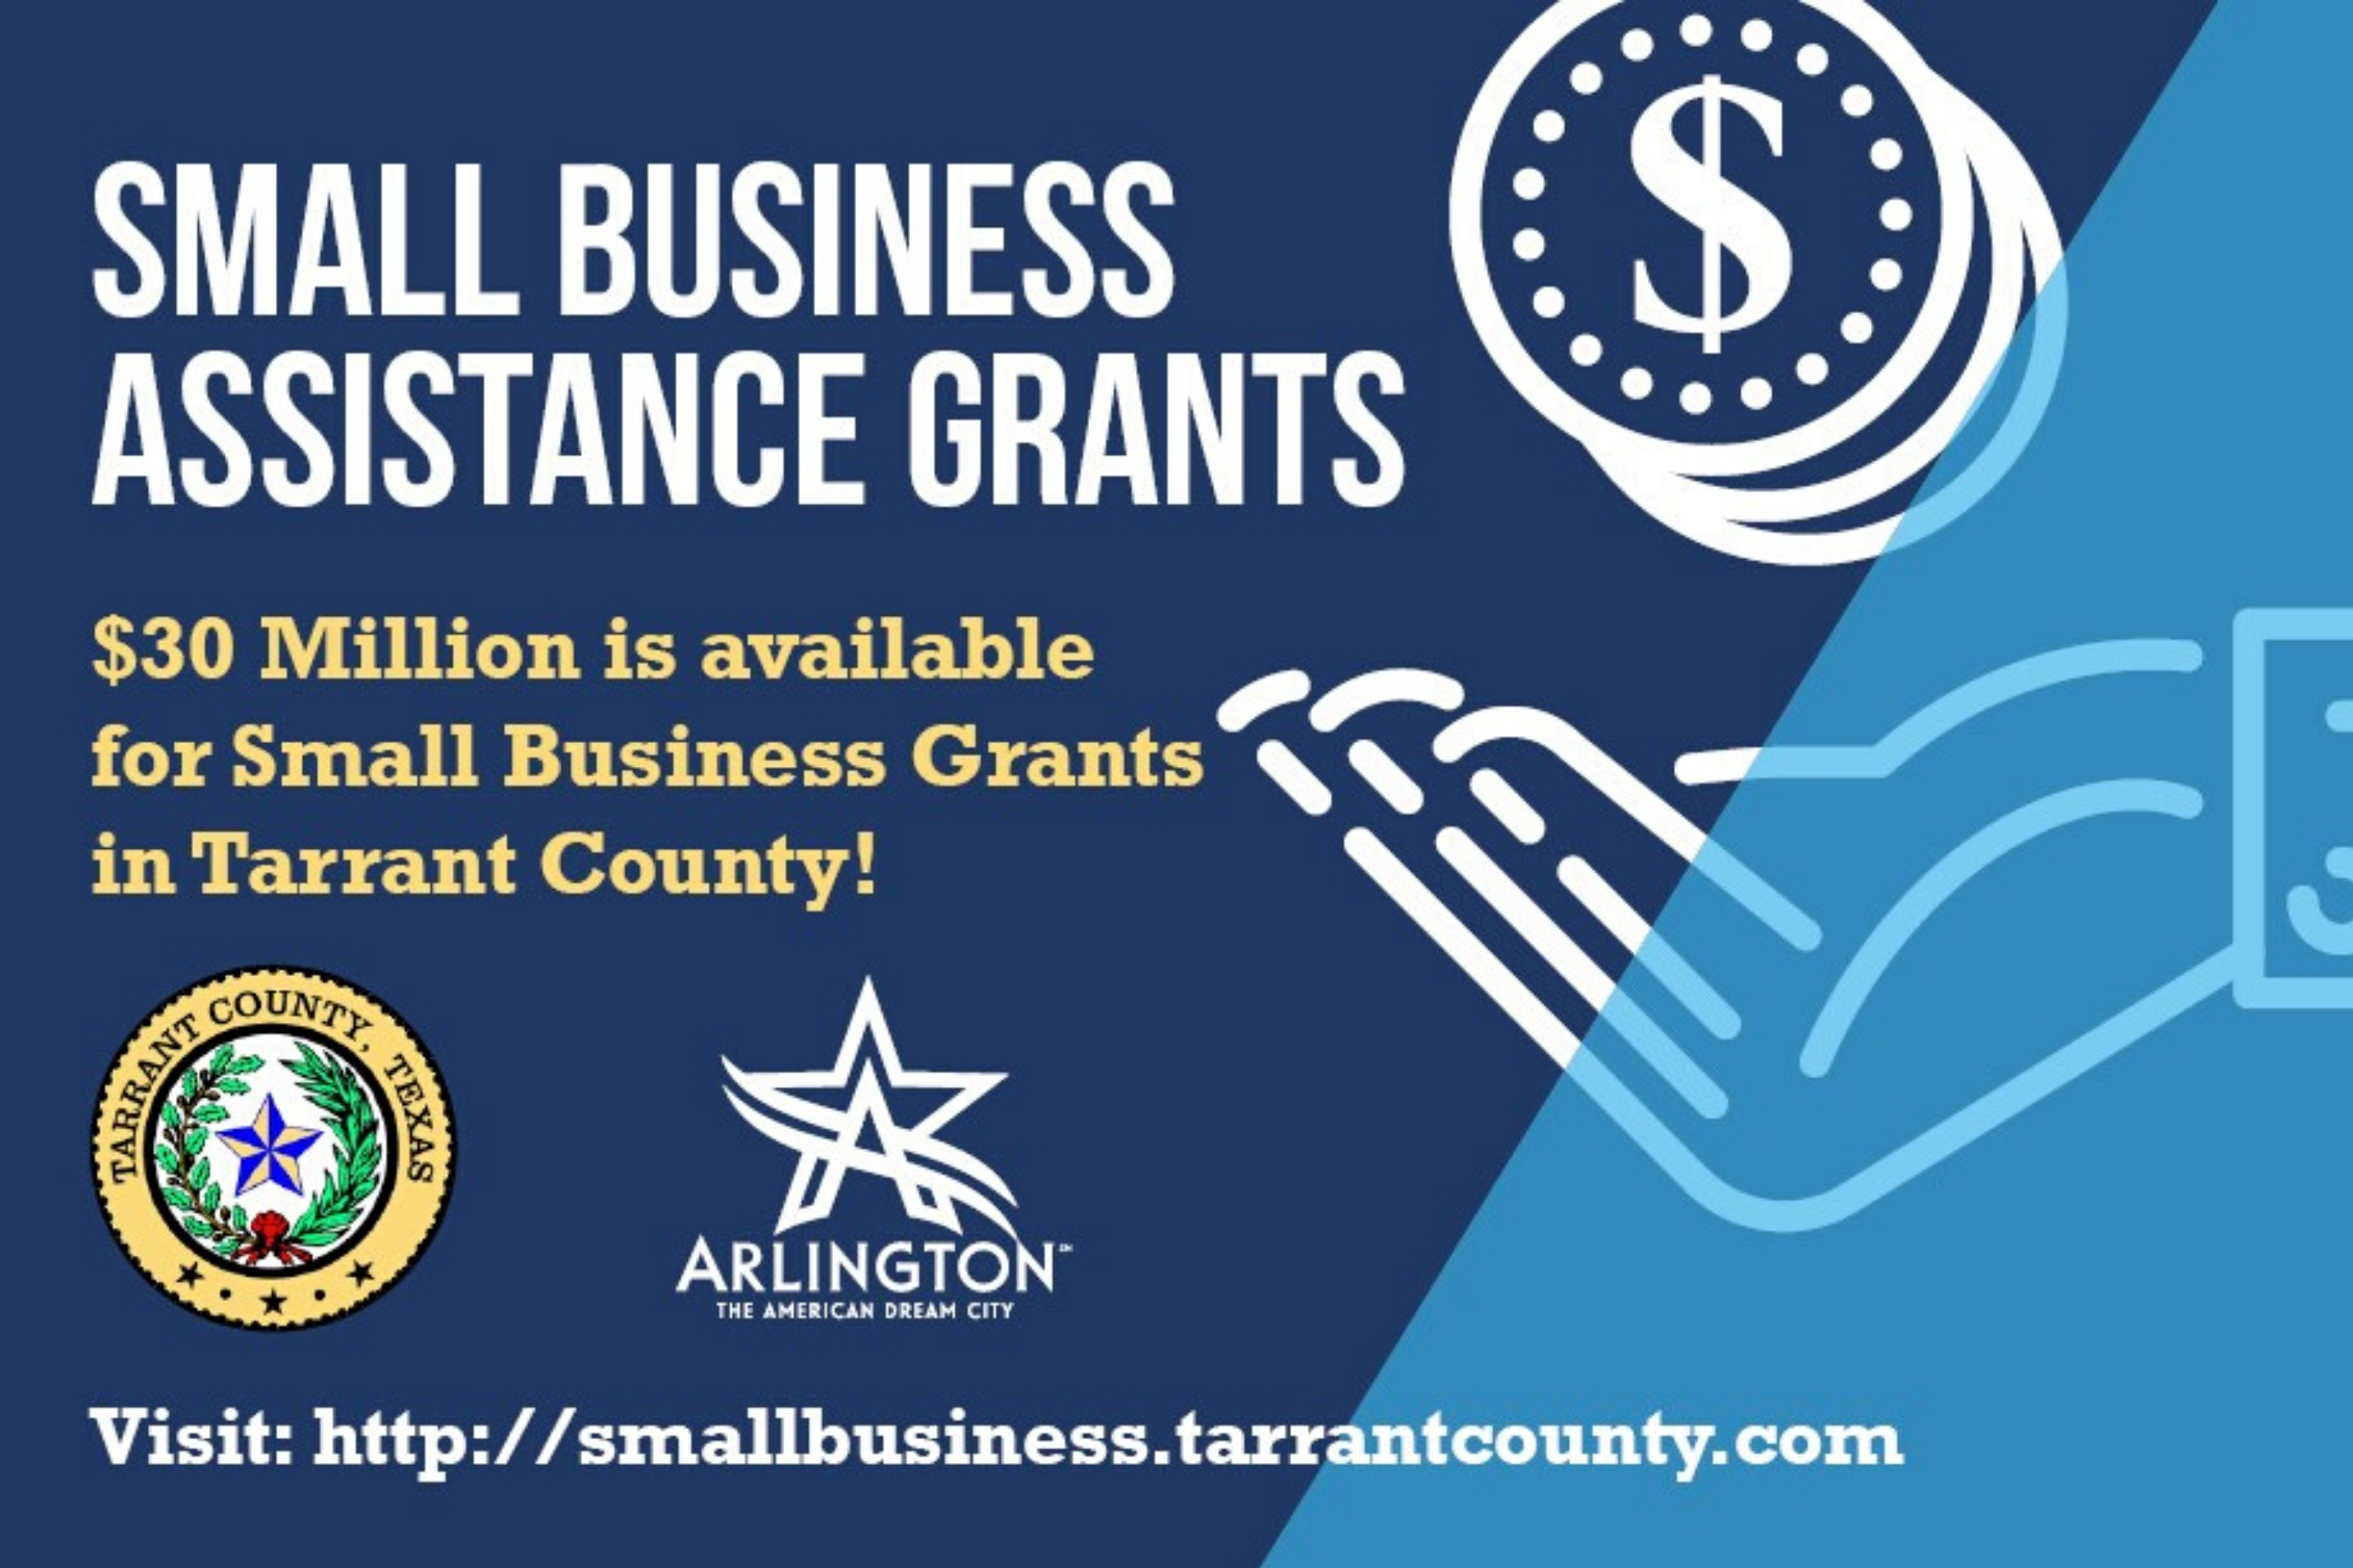 Free Computer Access for Small Business Assistance Grant Applications